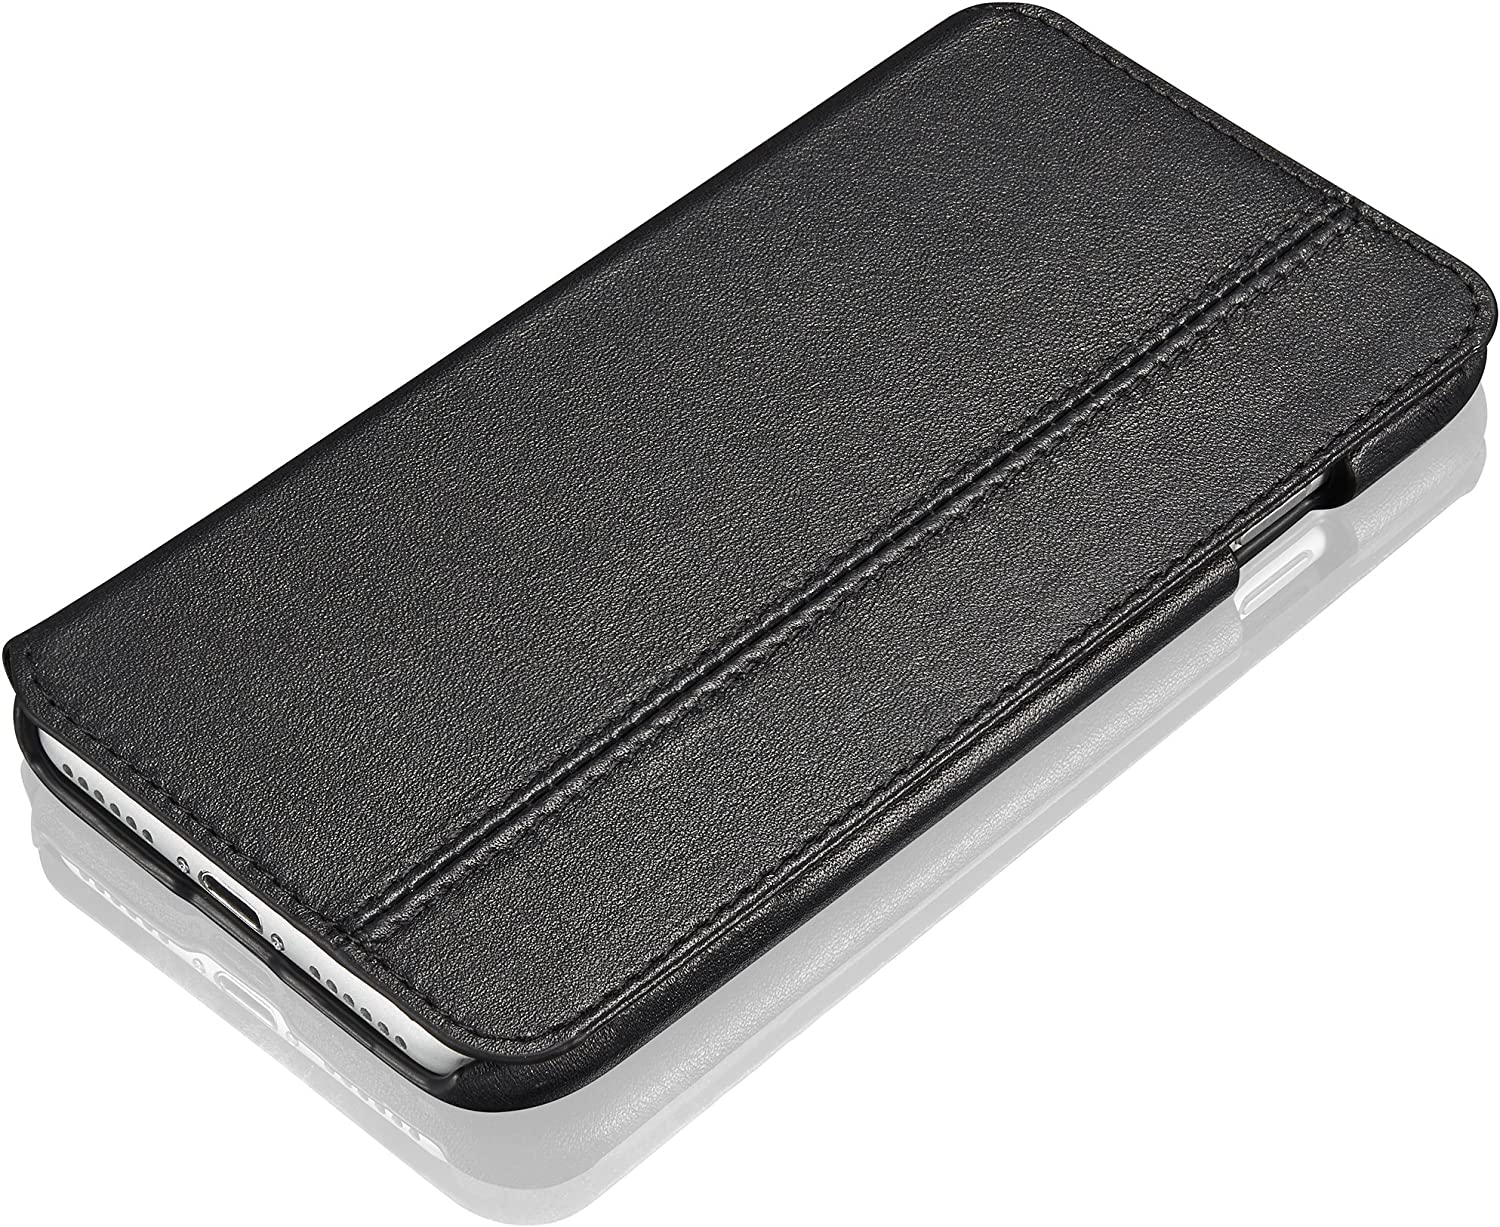 """KAVAJ Case Compatible with Apple iPhone SE (2020), 8, 7 4.7"""" Leather - Dallas - Black Wallet Folio Cover with Card Holder"""